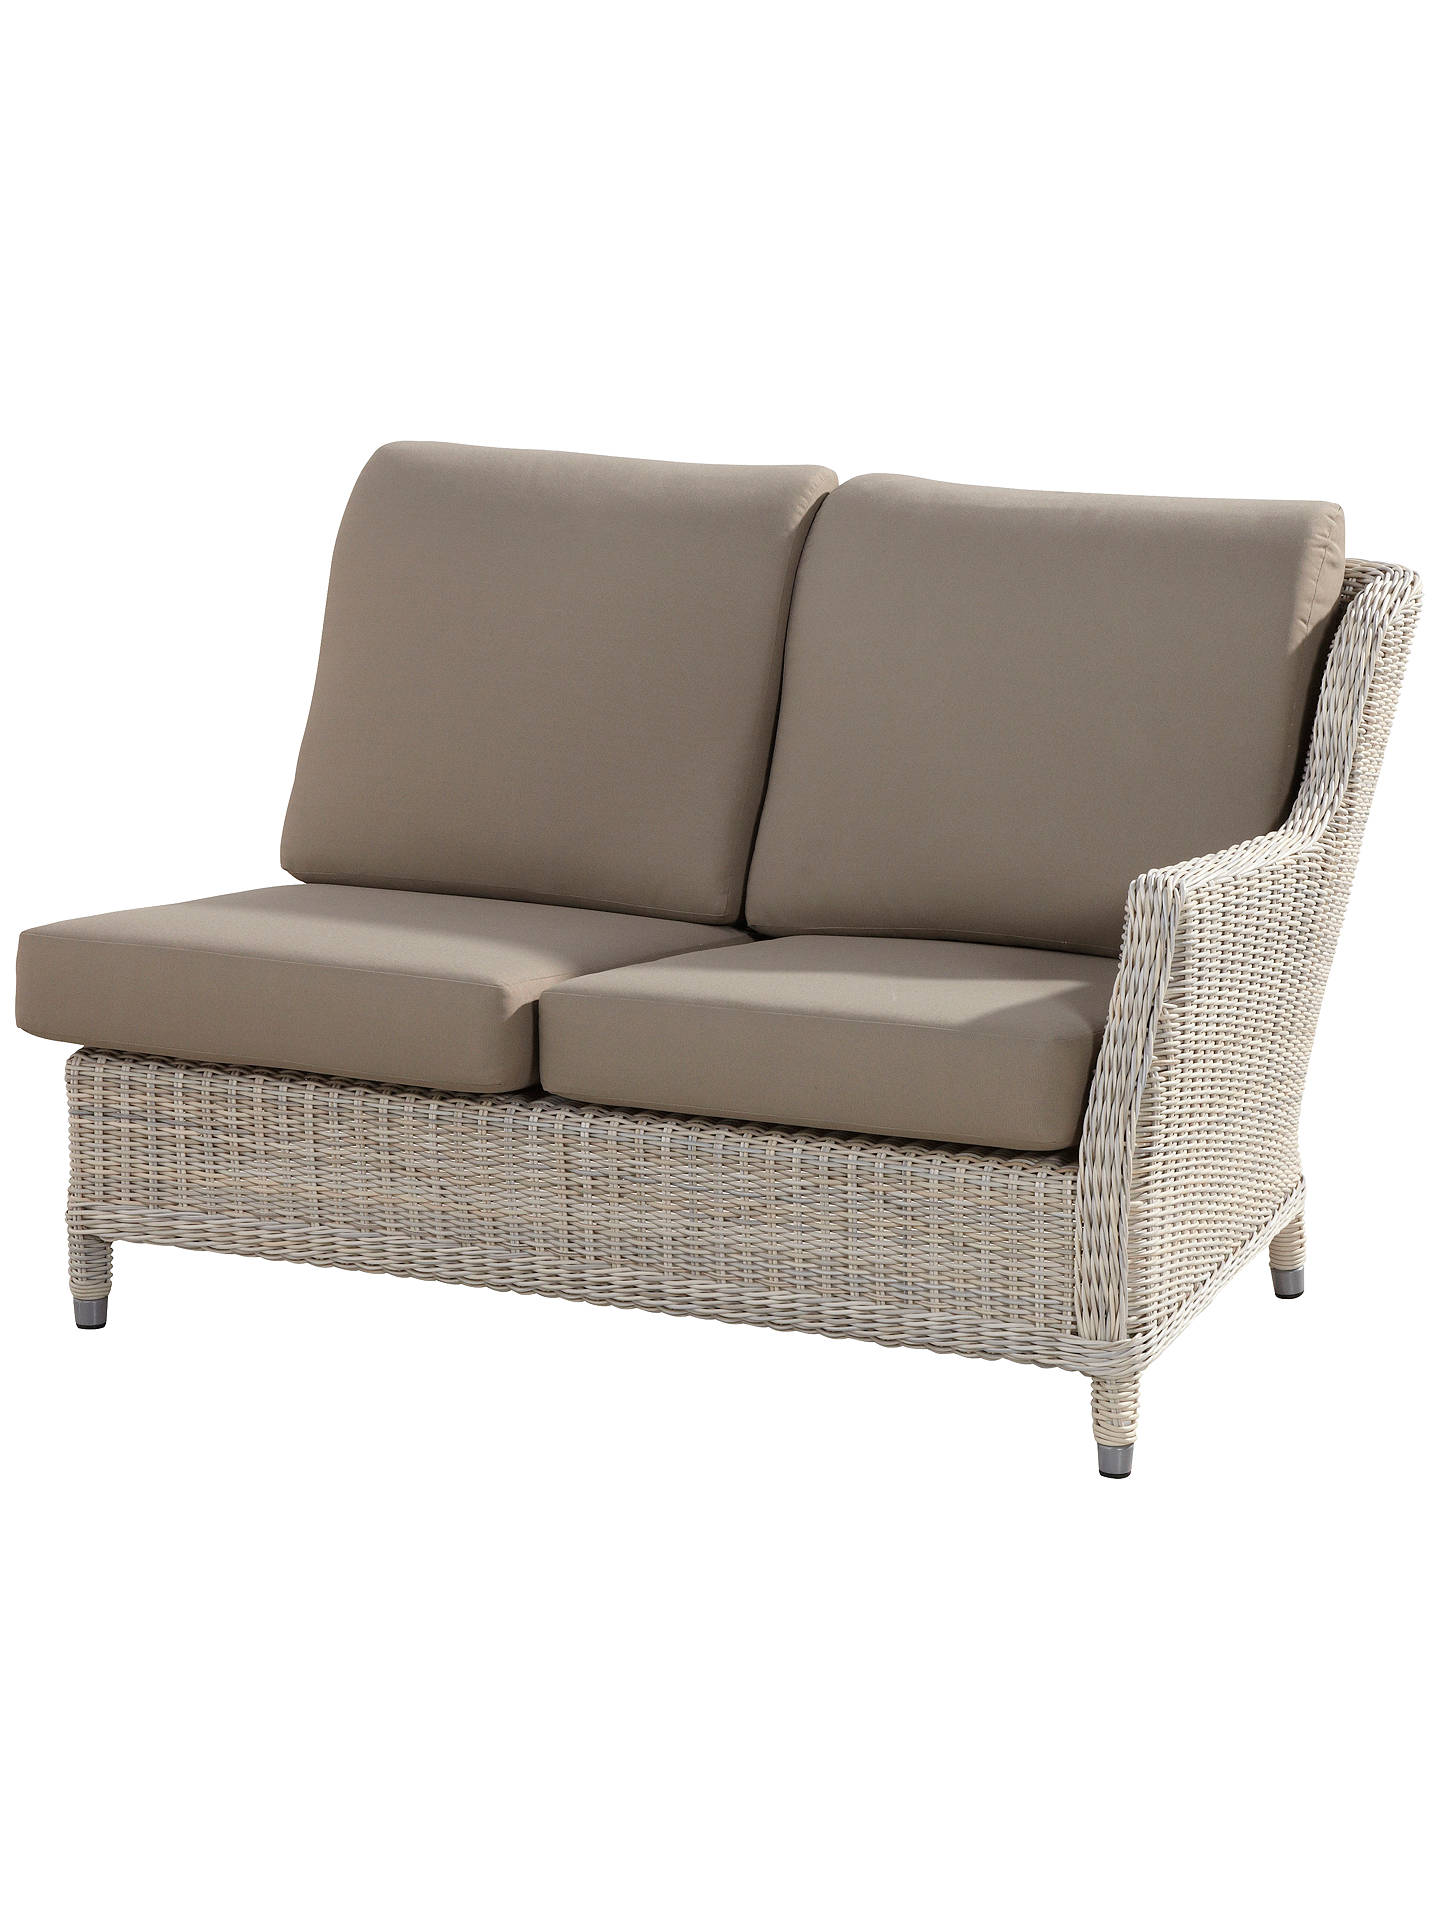 Cool 4 Seasons Outdoor Brighton Modular 2 Seater Sofa Left At Home Interior And Landscaping Ponolsignezvosmurscom